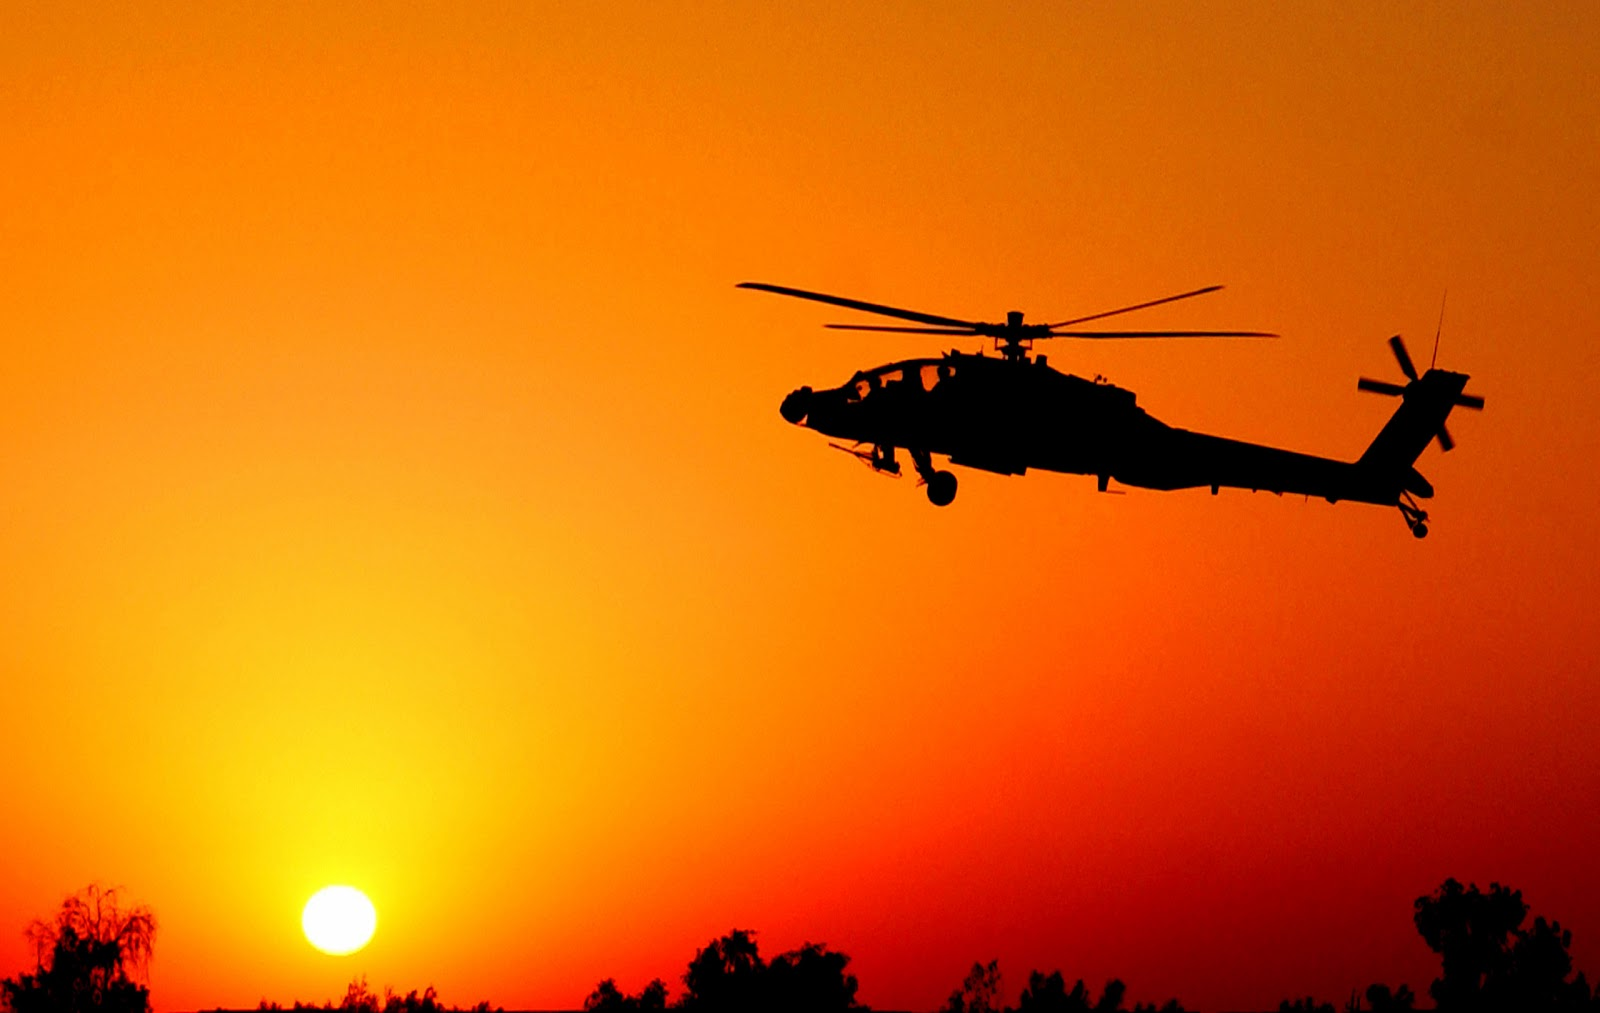 apache helicopter sd with Apache Helicopters Sunset Hd Wallpapers on Tamil tshirts besides Clip 10216 Stock Footage Ah Apache Gunship Training Over The Prairies Good Audio in addition Funny Groom Quotes besides Military Helicopter Coloring Pages likewise Apache Helicopters Sunset Hd Wallpapers.